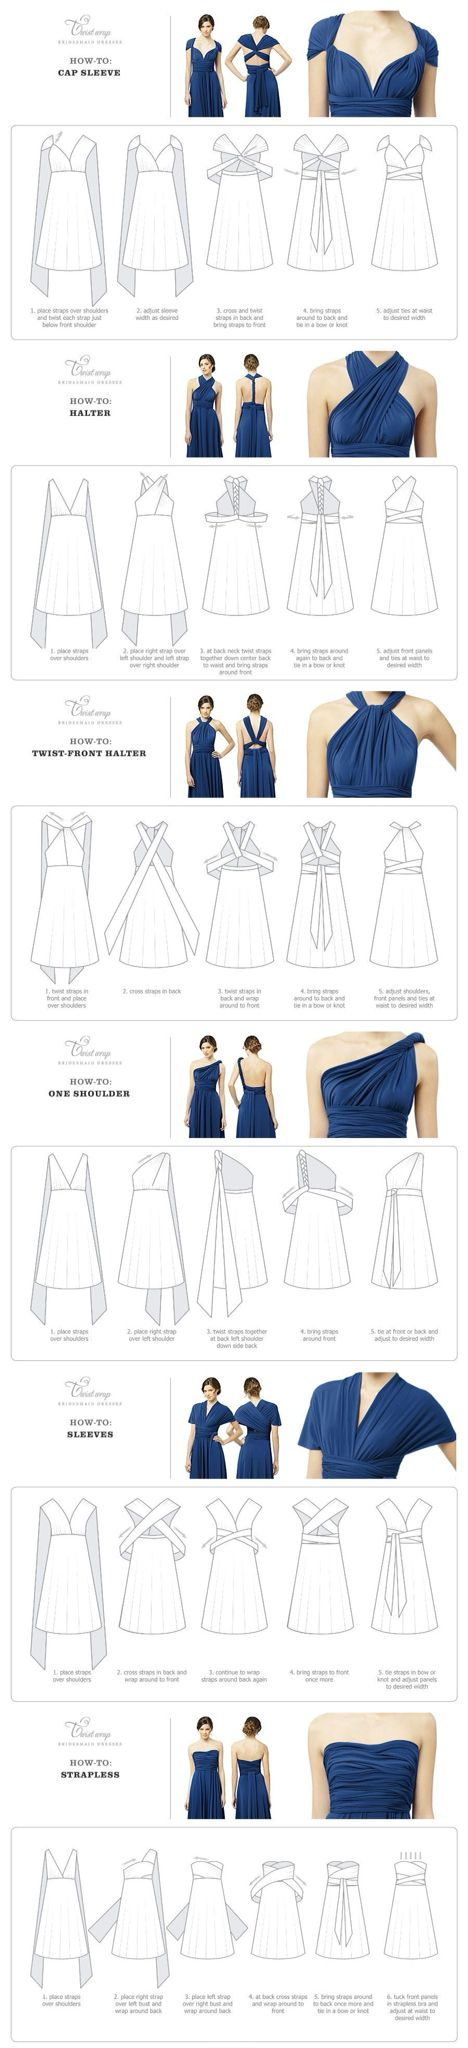 Twist wrap dress. A great option when the bridesmaids want to look a ...